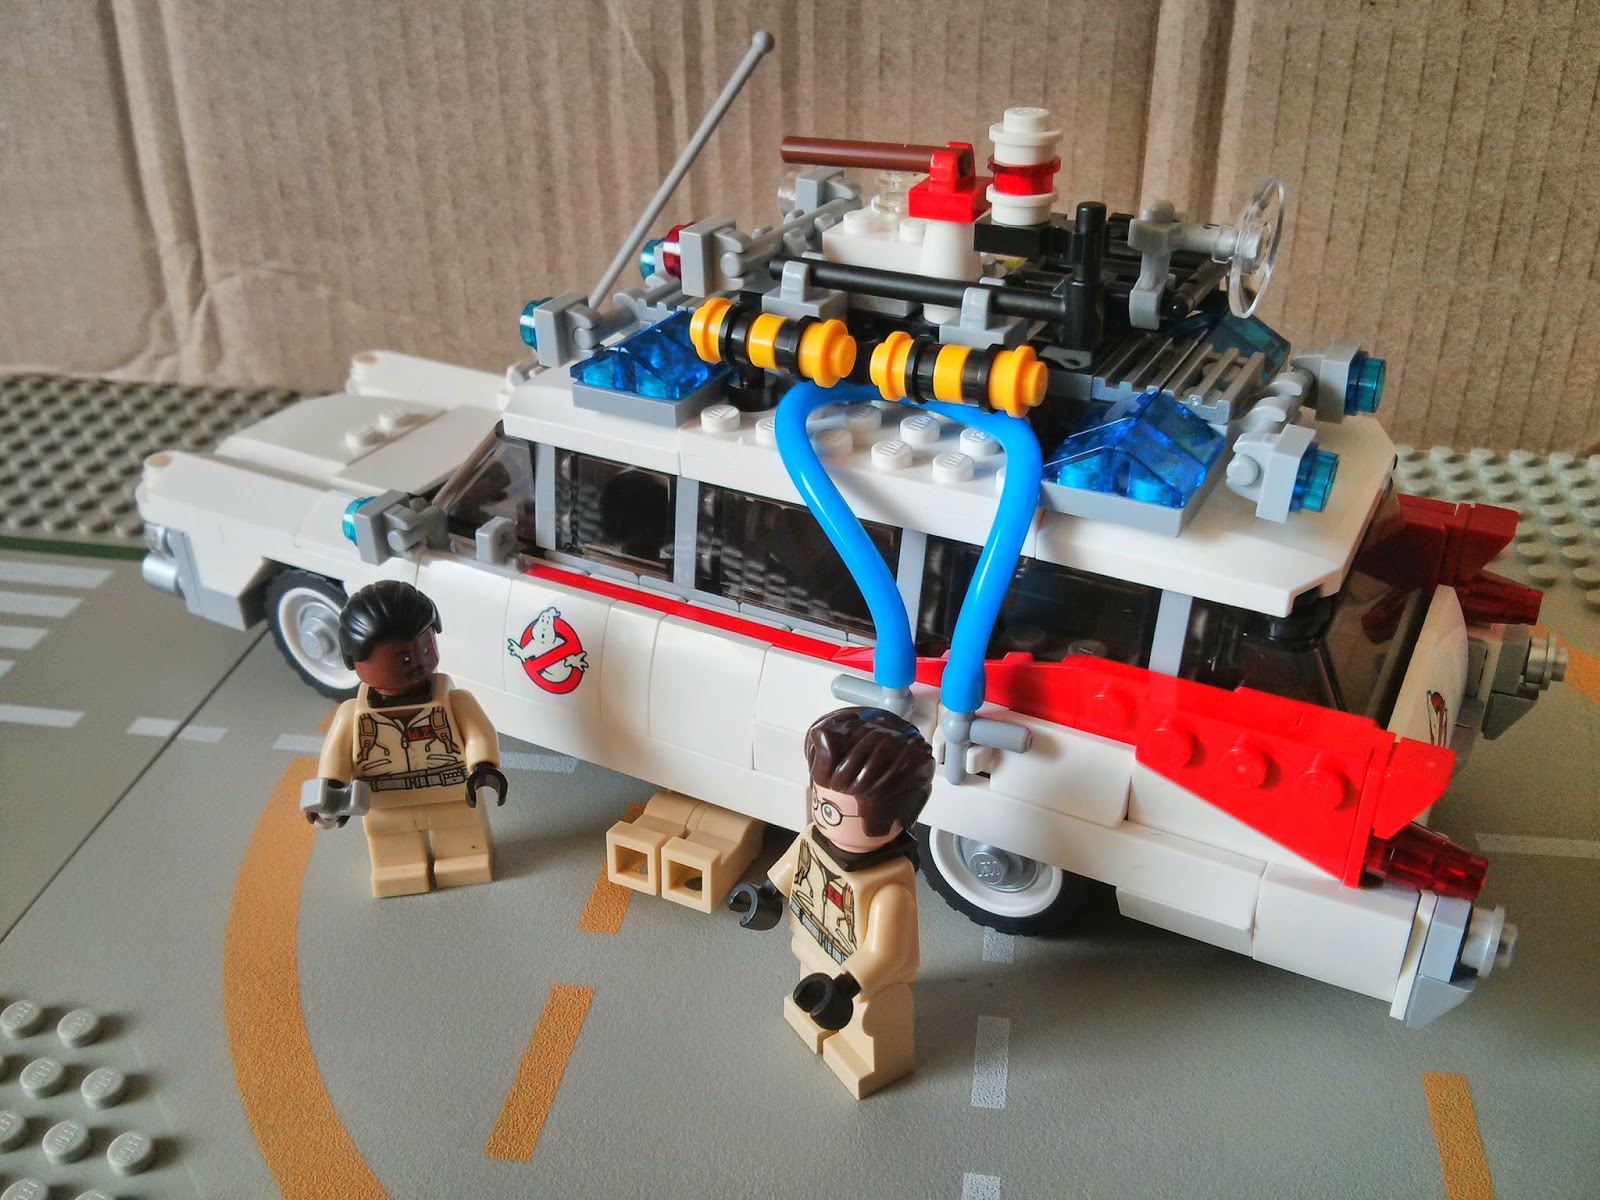 Winston and Egon work on the Lego Ecto-1